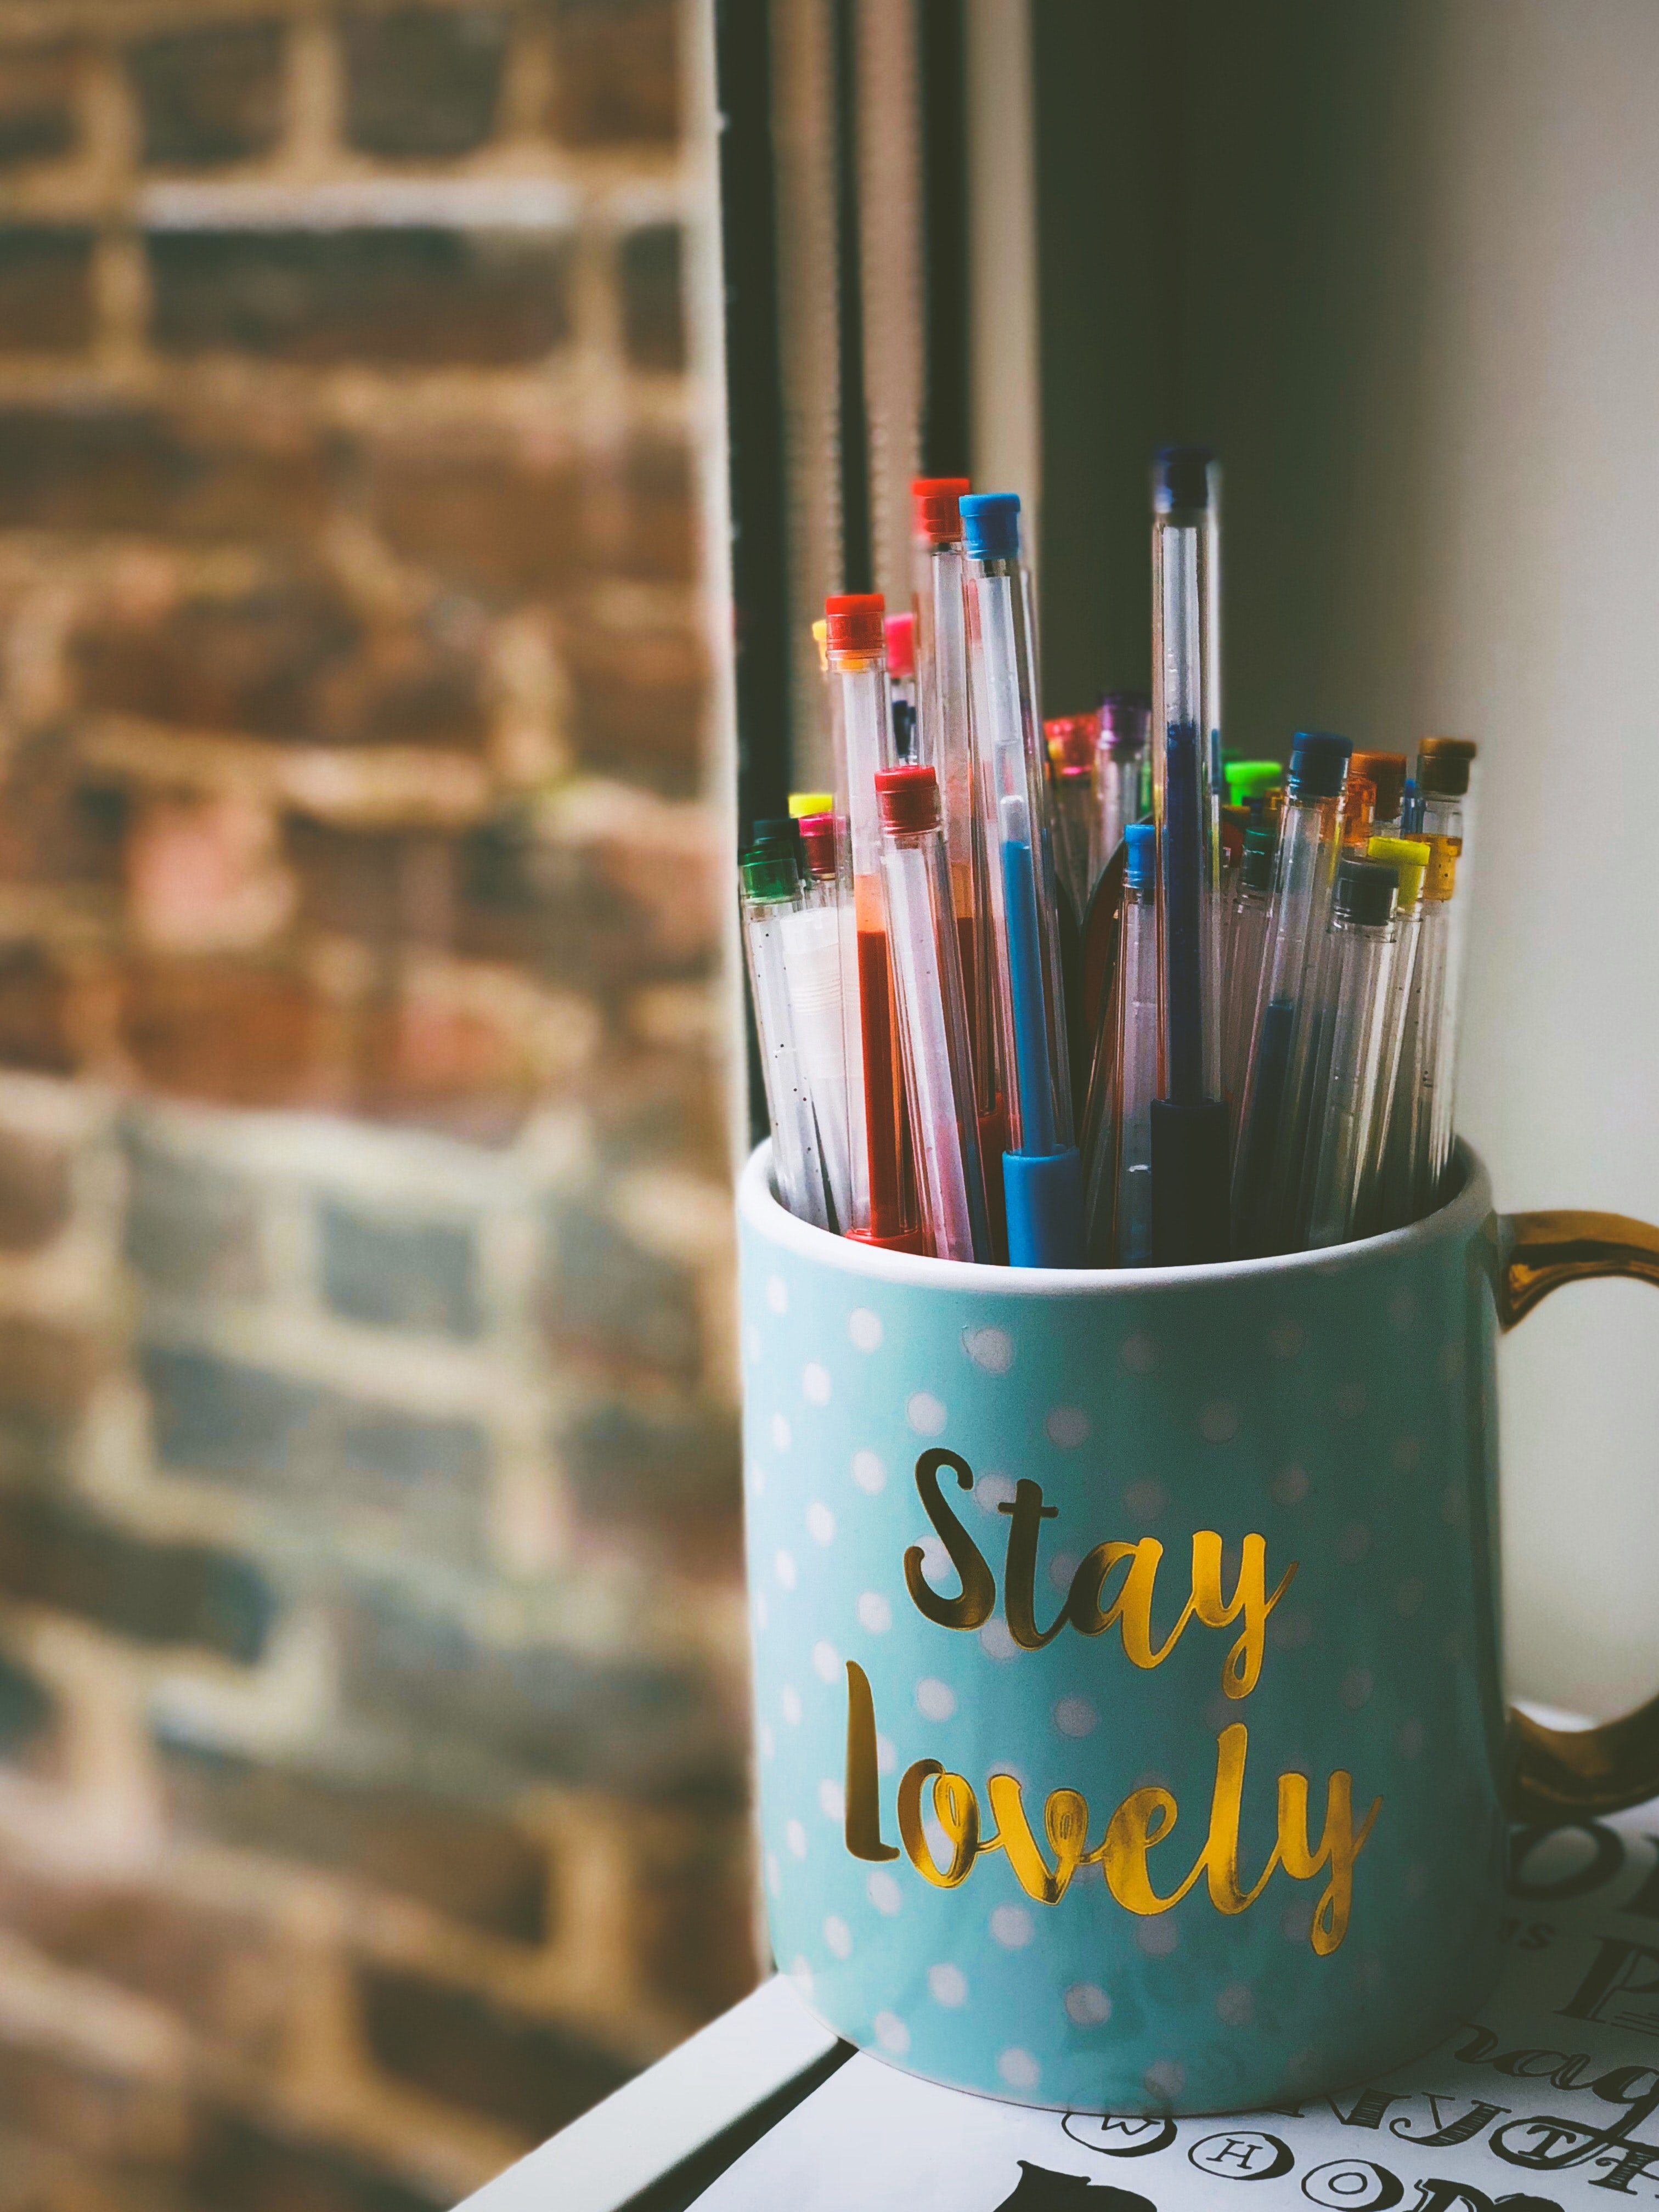 pens in blue ceramic mug in front of window during daytime